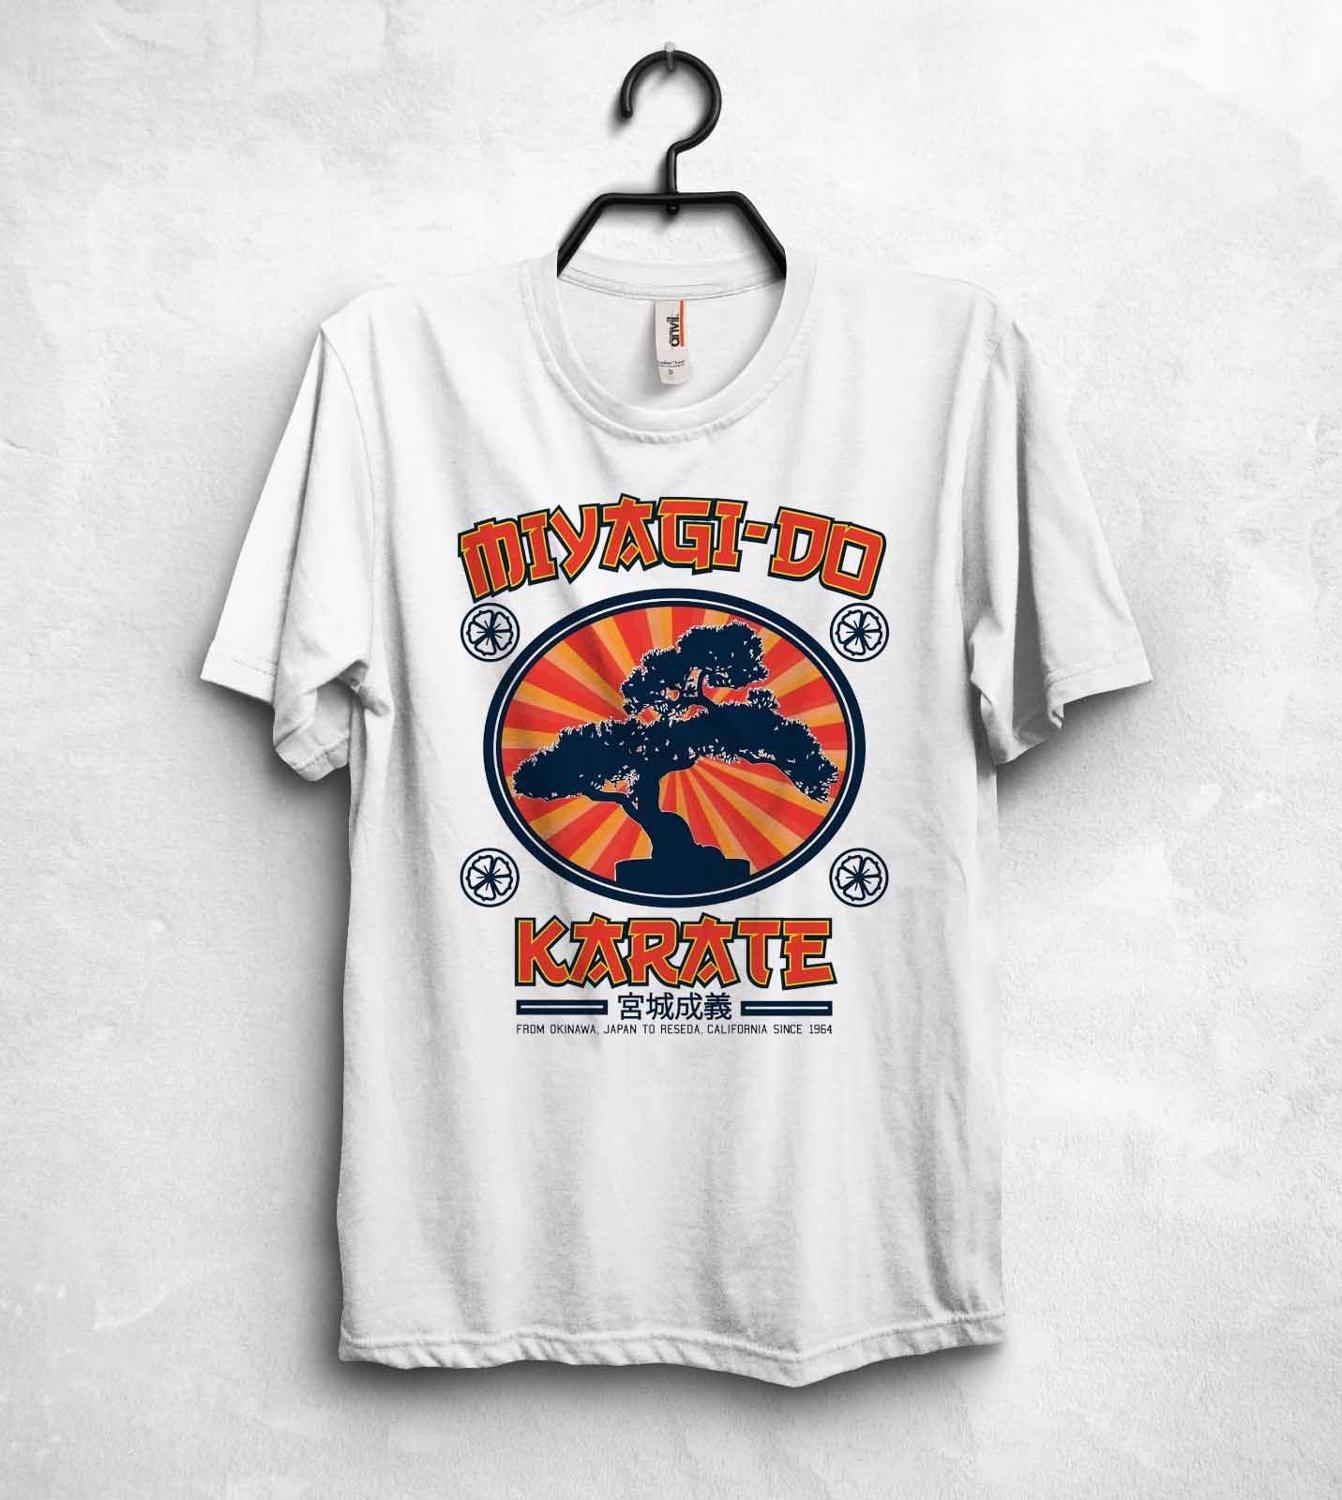 New Fashion Brand Clothing Miyagi Do Karate Dojo T Shirt Top Kensuke Miyagi Karate Kid Movie Jackie Chan custom t shirts image